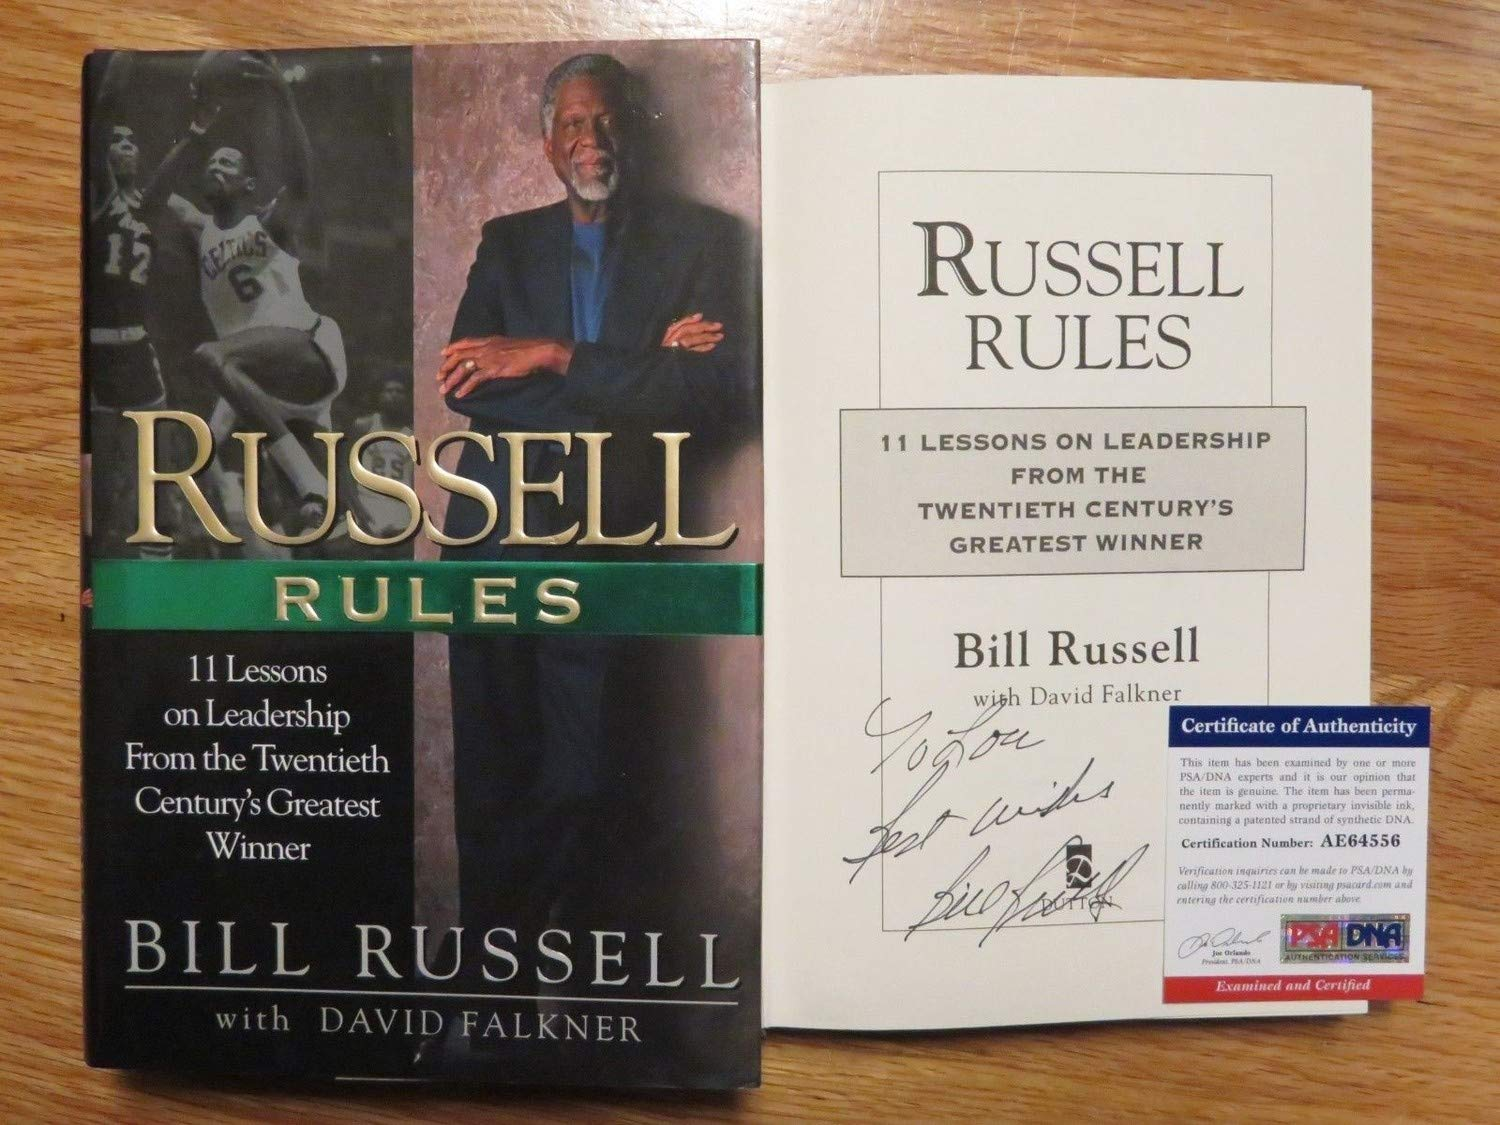 Bill Russell Autographed Signed Russell Rules 1St Ed 2001 Book Memorabilia PSA/DNA Boston Celtics Lou